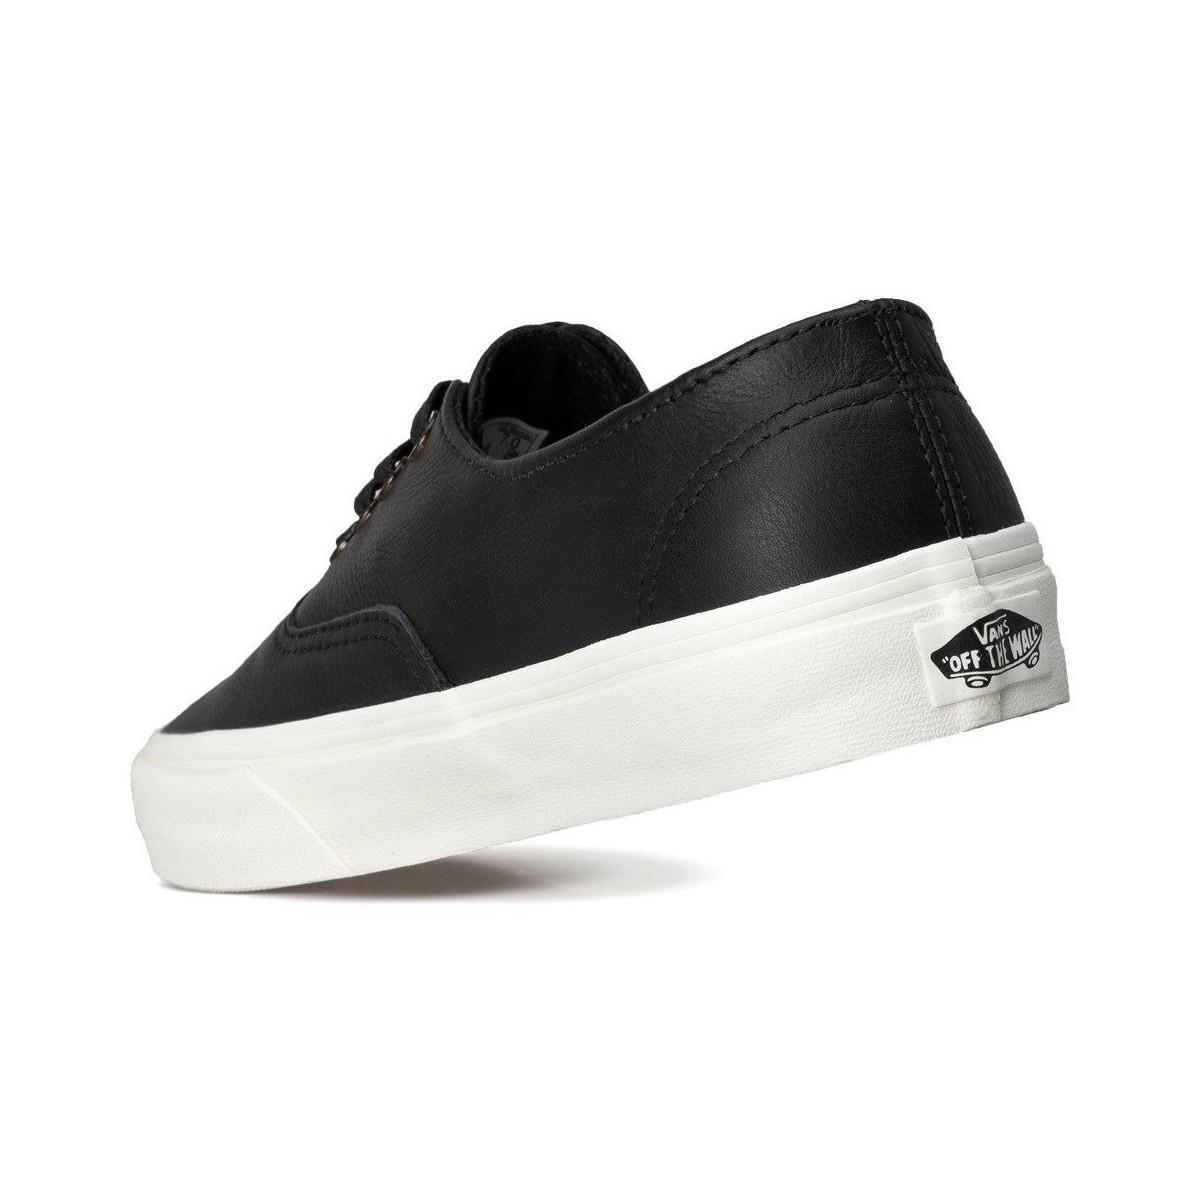 6641423762 Vans - Black Authentic Decon Women s Shoes (trainers) In Multicolour -  Lyst. View fullscreen